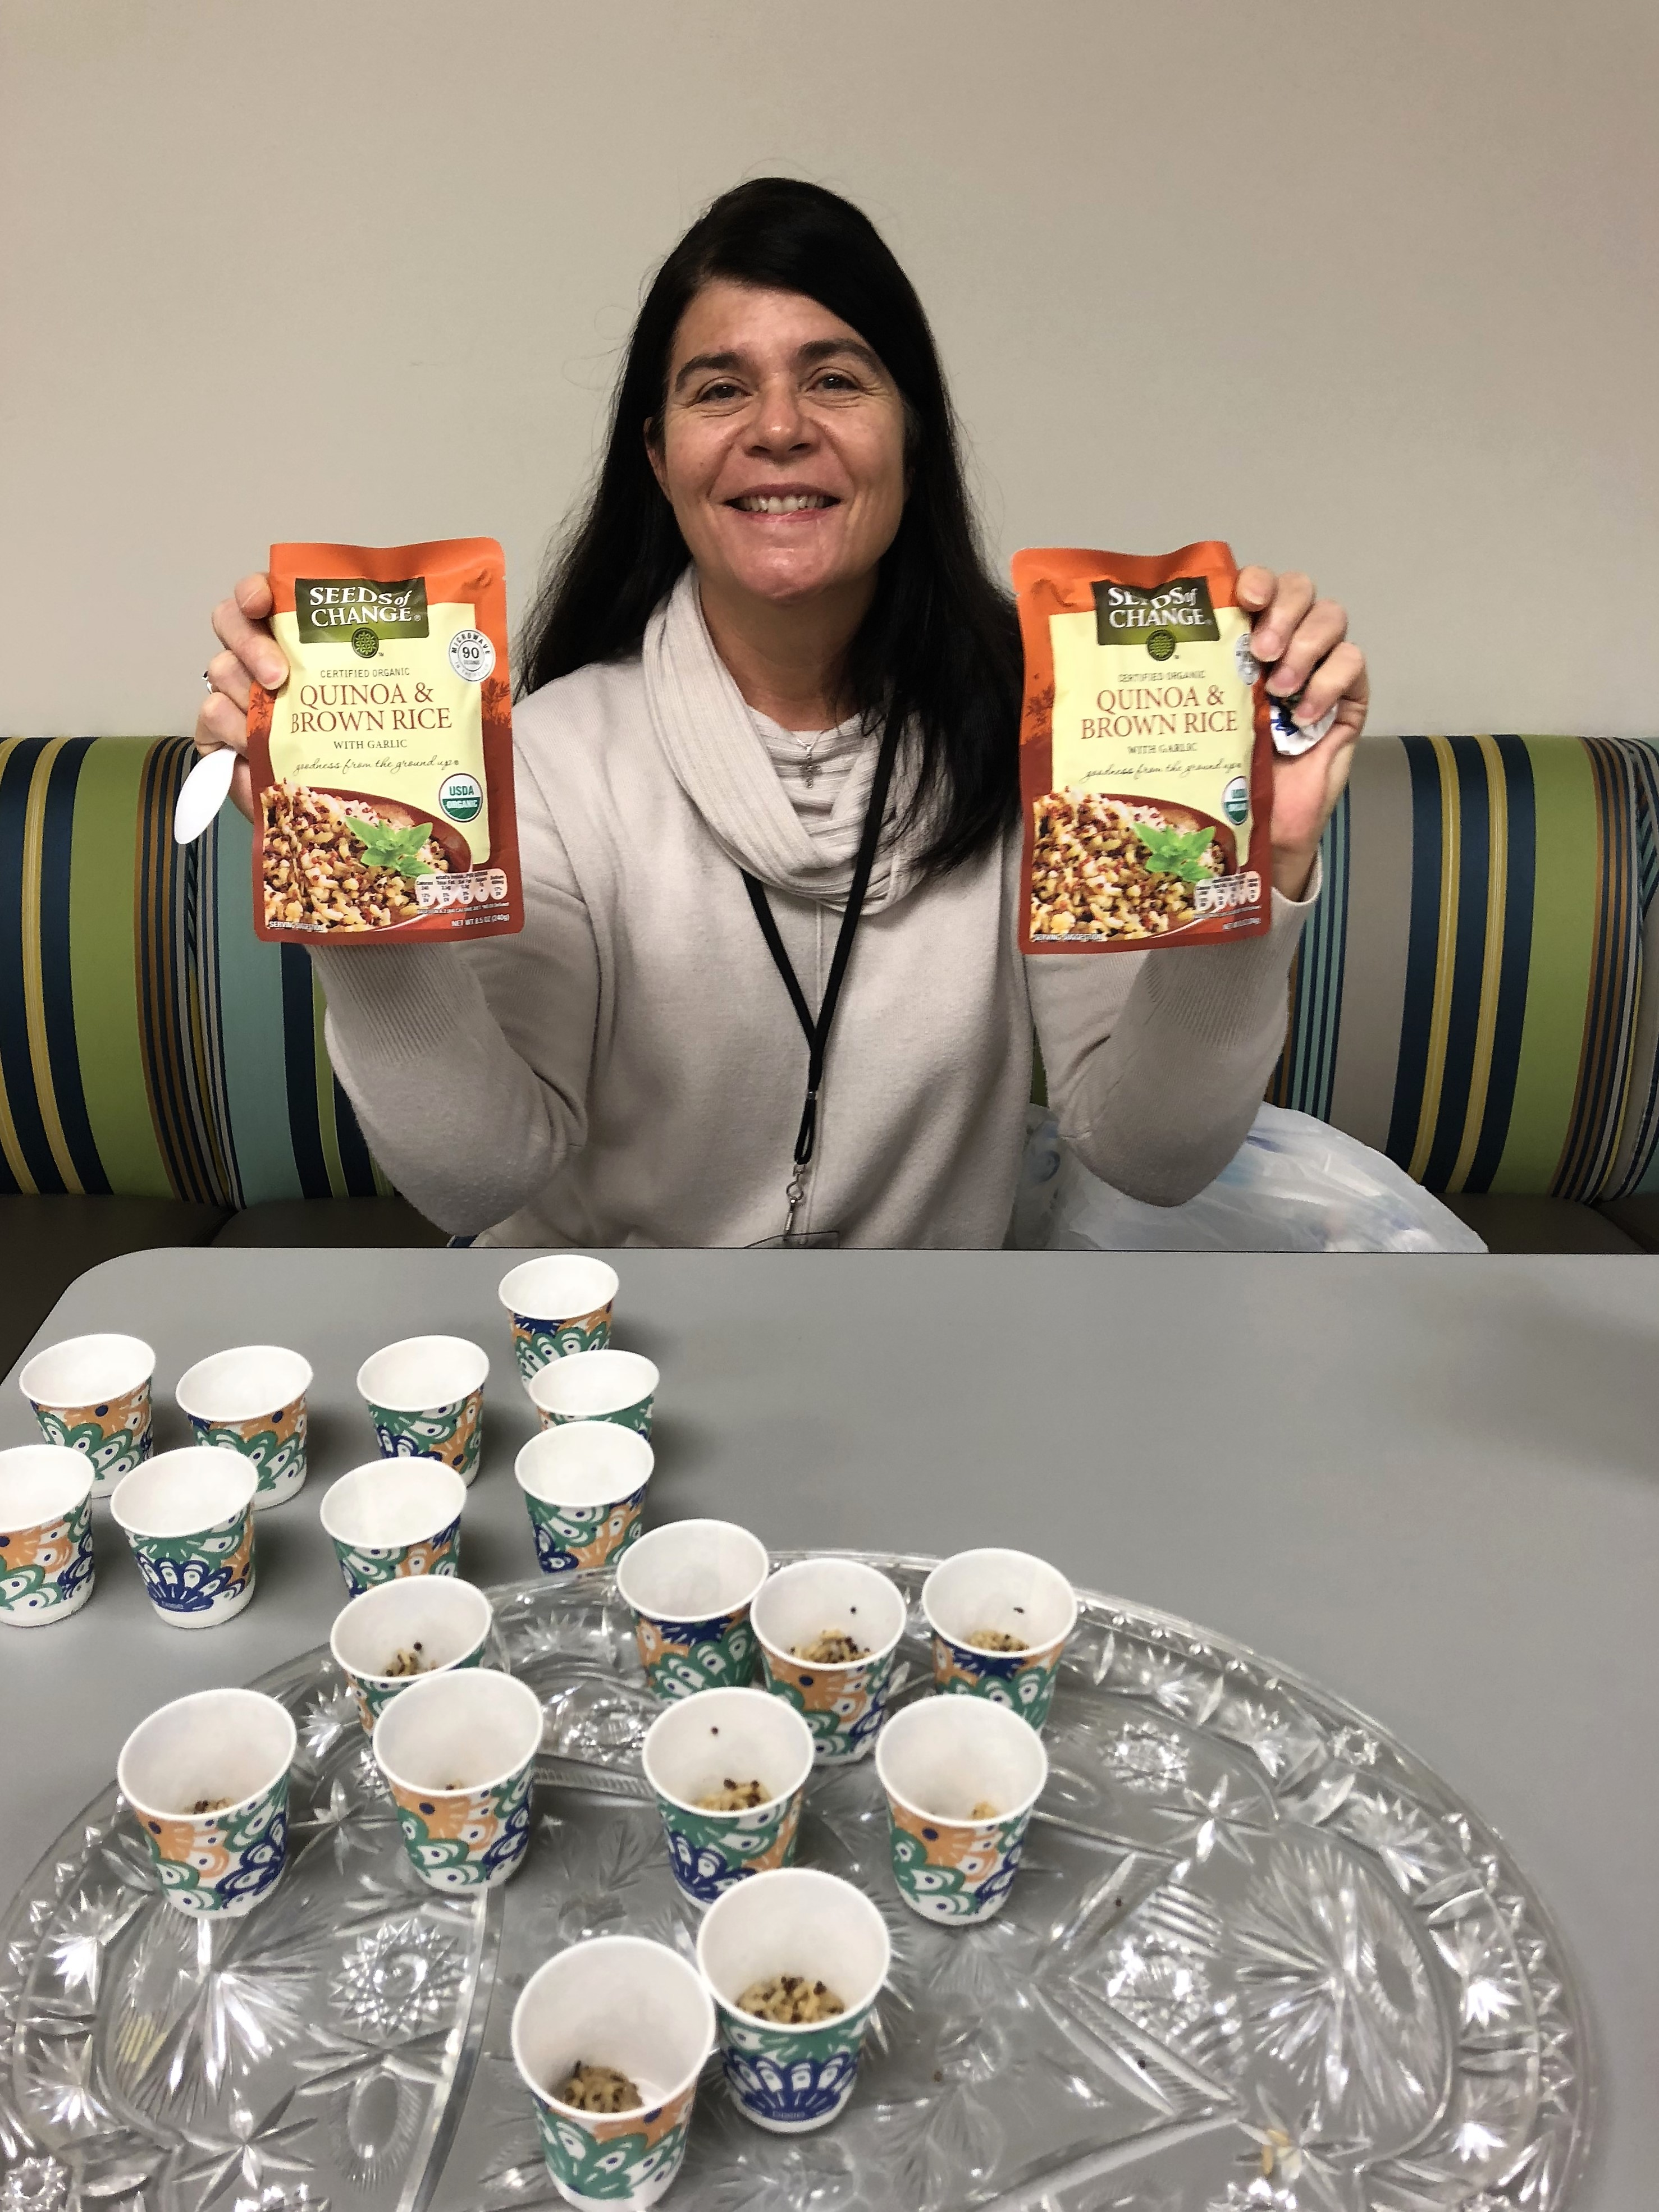 The Department of Children's Services hosted a quinoa taste test. Here's Venus Singleton participating.